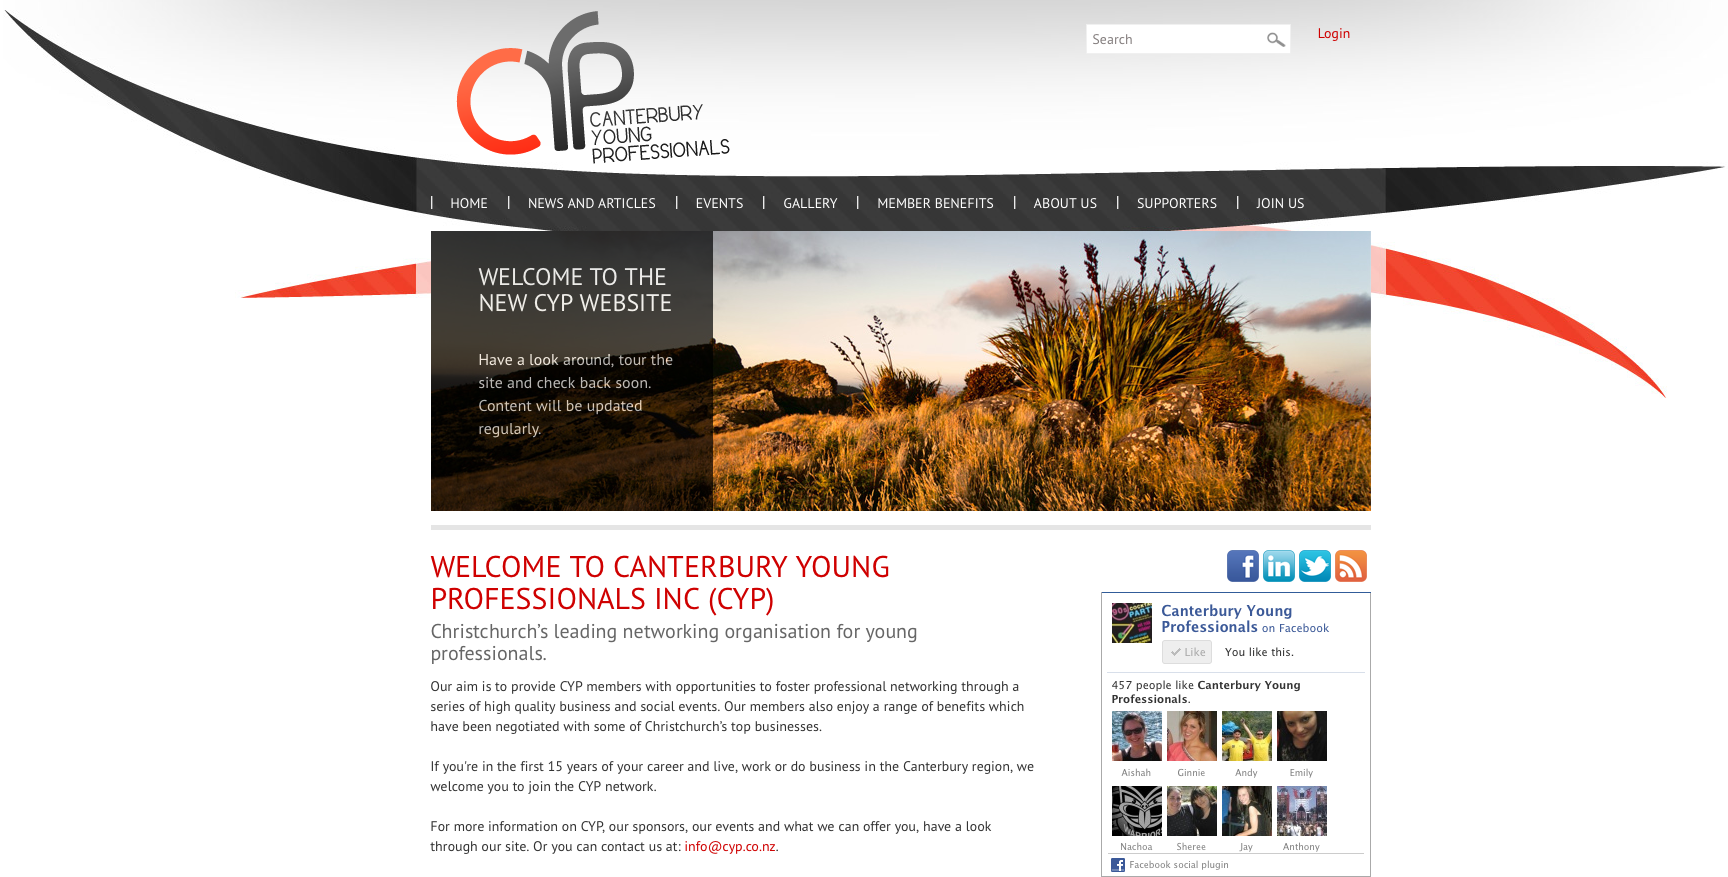 Canterbury Young Professionals Inc. (camfindlay)